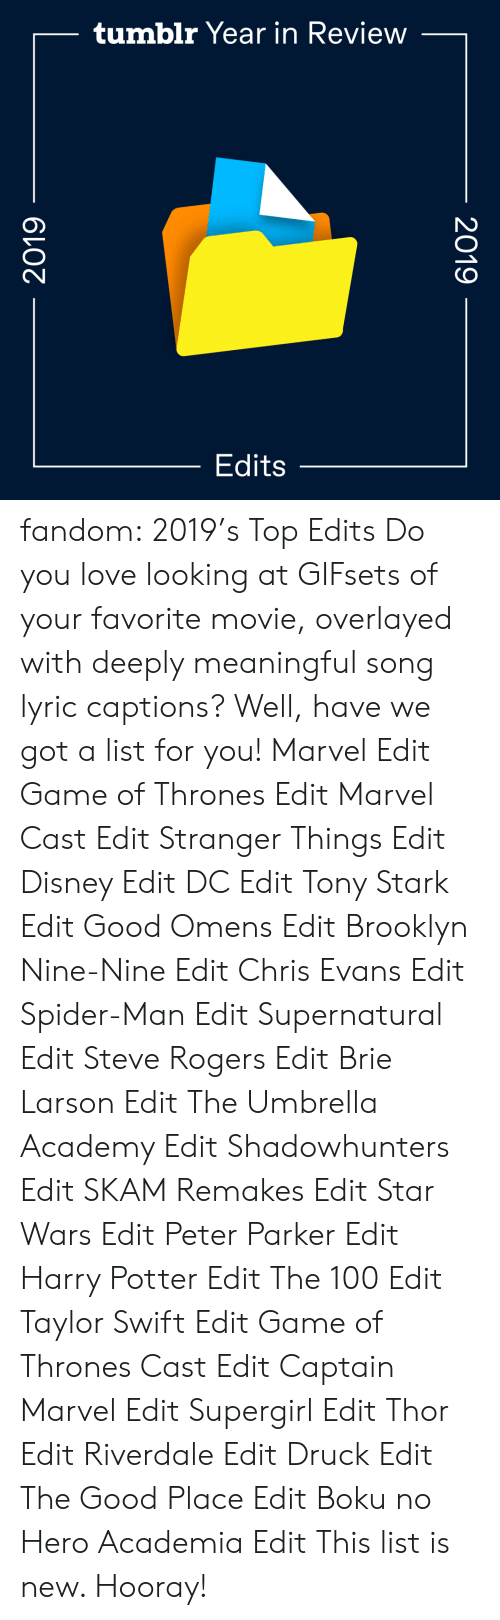 swift: tumblr Year in Review  Edits  2019  2019 fandom:  2019's Top Edits  Do you love looking at GIFsets of your favorite movie, overlayed with deeply meaningful song lyric captions? Well, have we got a list for you!  Marvel Edit  Game of Thrones Edit  Marvel Cast Edit  Stranger Things Edit  Disney Edit  DC Edit  Tony Stark Edit  Good Omens Edit  Brooklyn Nine-Nine Edit  Chris Evans Edit  Spider-Man Edit  Supernatural Edit  Steve Rogers Edit  Brie Larson Edit  The Umbrella Academy Edit  Shadowhunters Edit  SKAM Remakes Edit  Star Wars Edit  Peter Parker Edit  Harry Potter Edit  The 100 Edit  Taylor Swift Edit  Game of Thrones Cast Edit  Captain Marvel Edit  Supergirl Edit  Thor Edit  Riverdale Edit  Druck Edit  The Good Place Edit  Boku no Hero Academia Edit This list is new. Hooray!